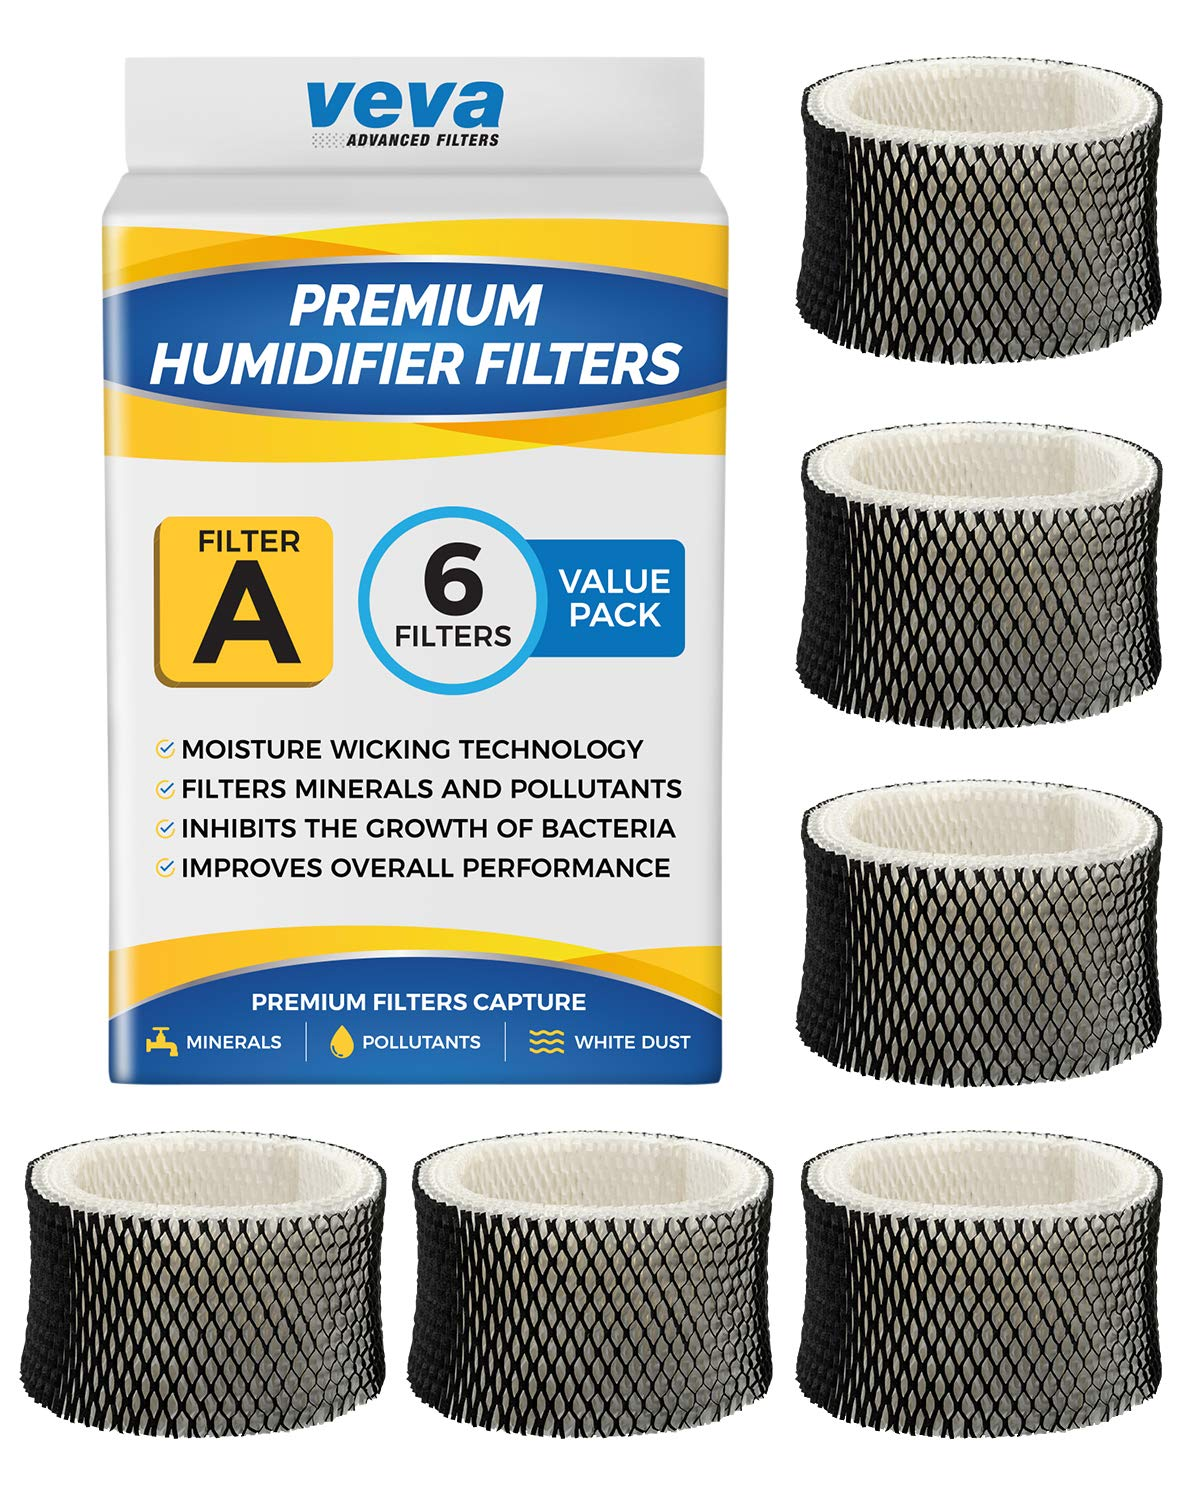 VEVA 6 Pack Premium Humidifier Filters Replacement for Holmes Filter A, HWF62, HWF62S, and Other Sunbeam Cool Mist Humidifiers